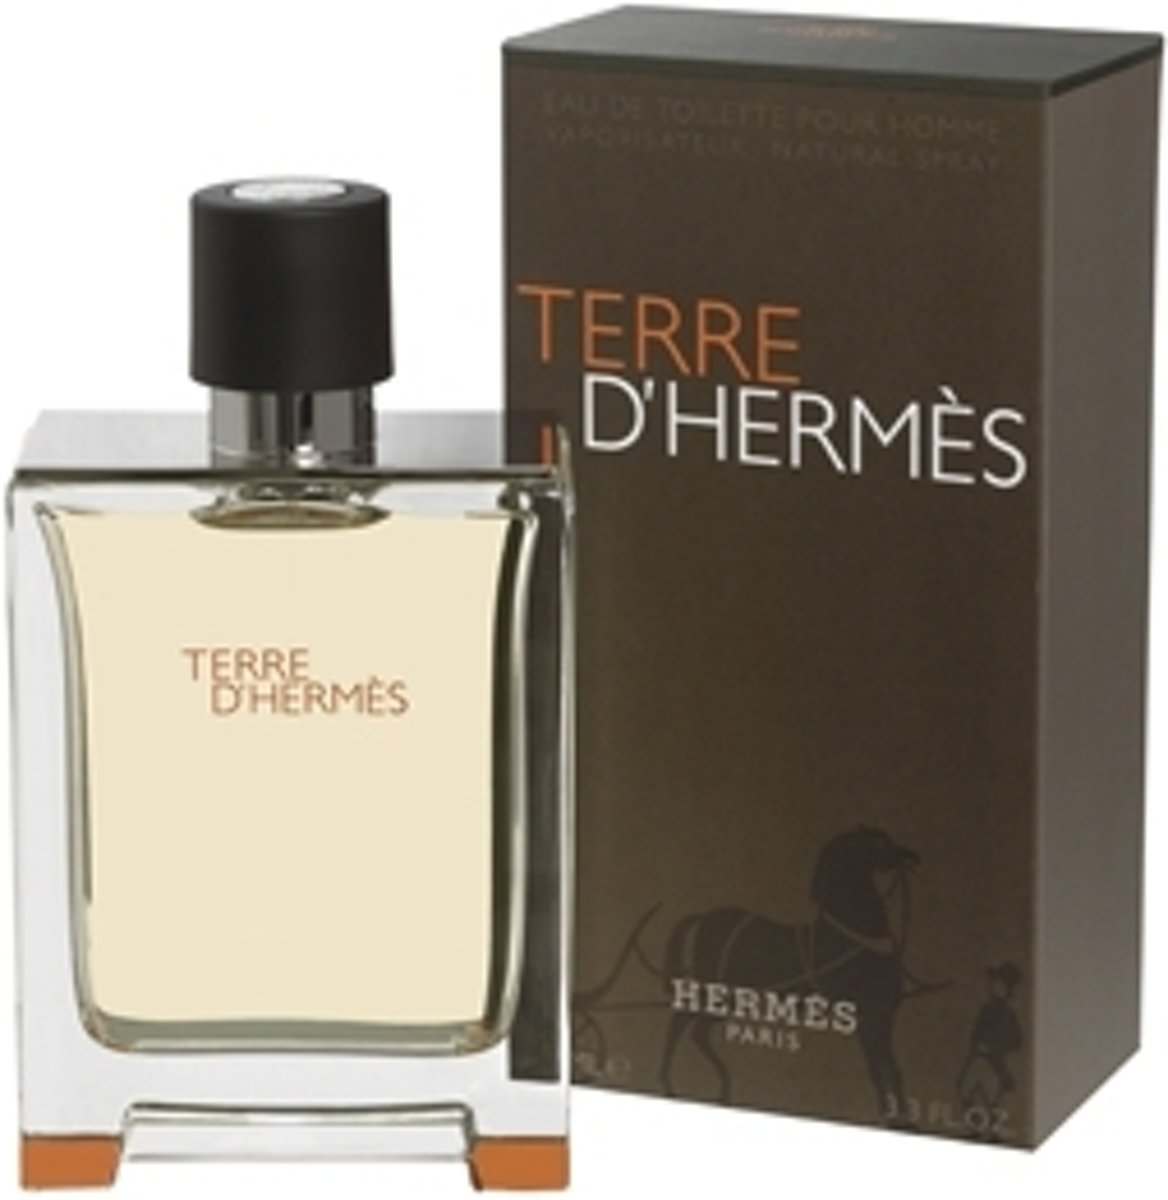 Hermès - Terre de Hermès - 200 ml - Hair & Body Shower Gel